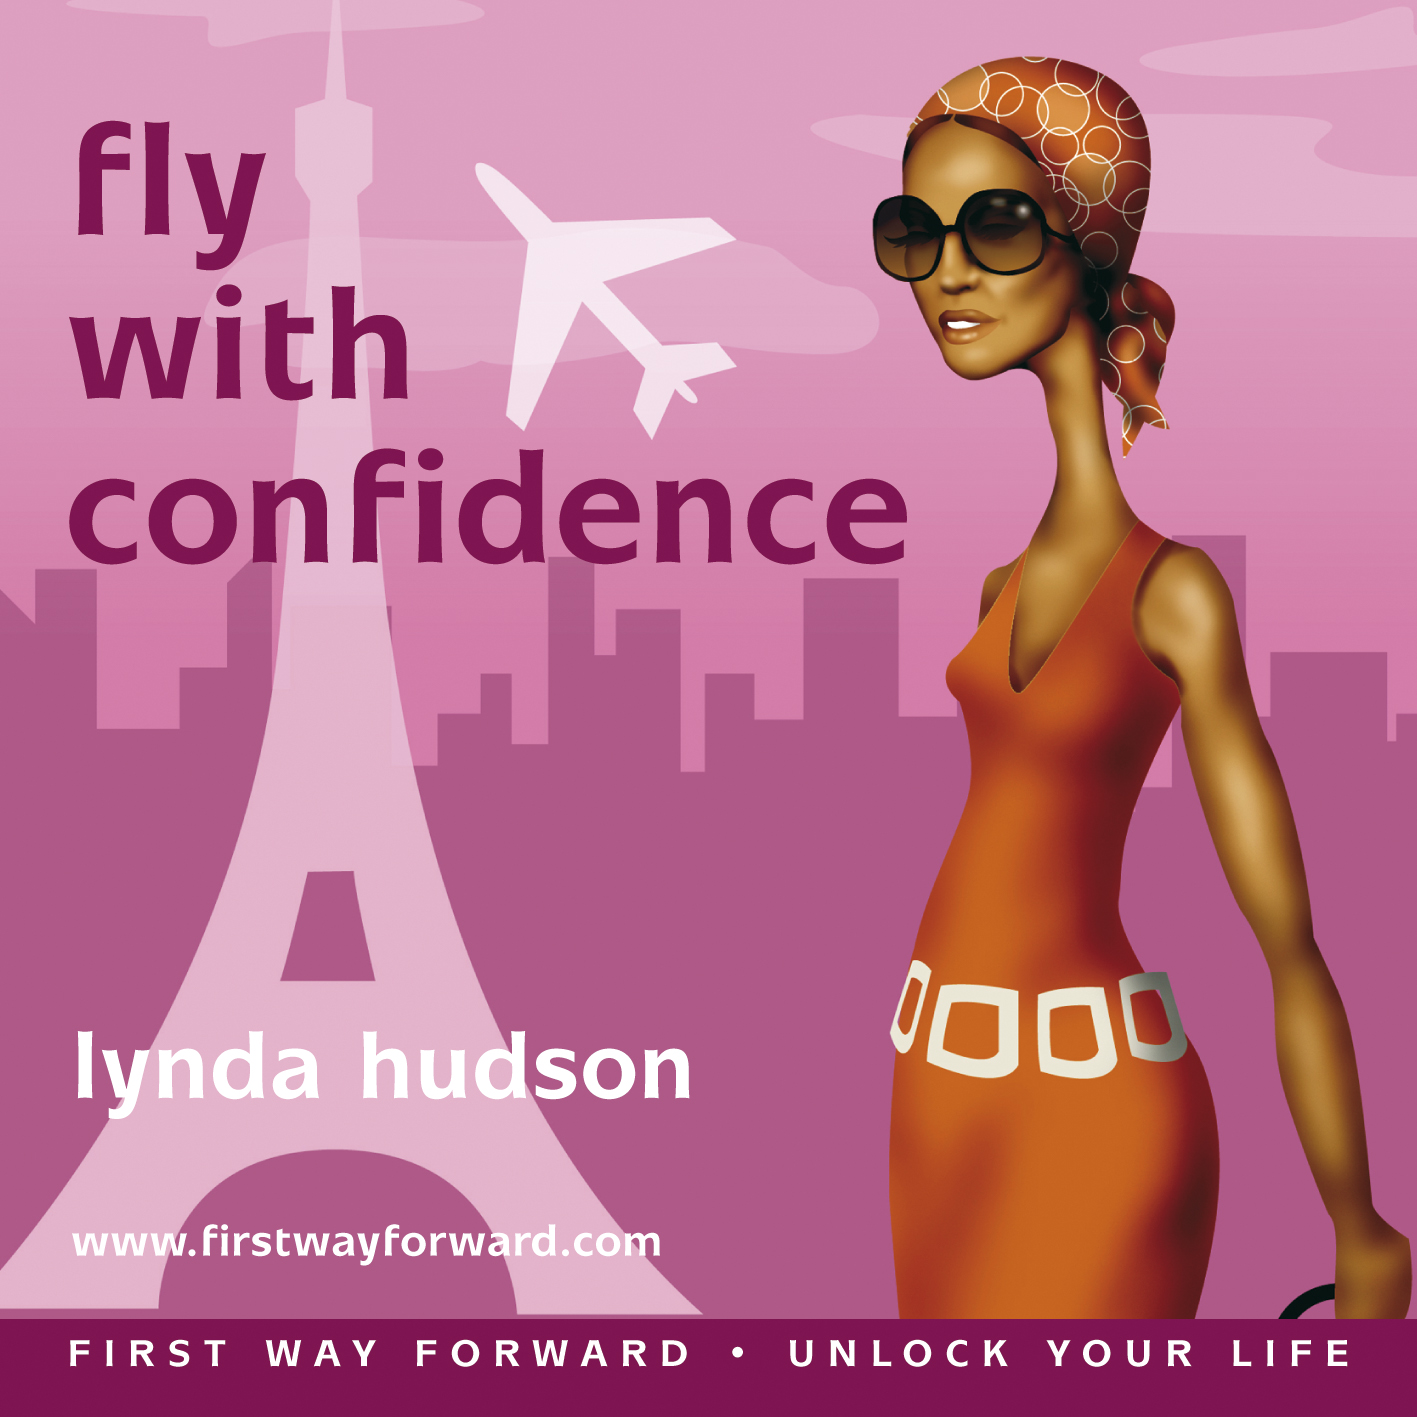 Fly with confidence